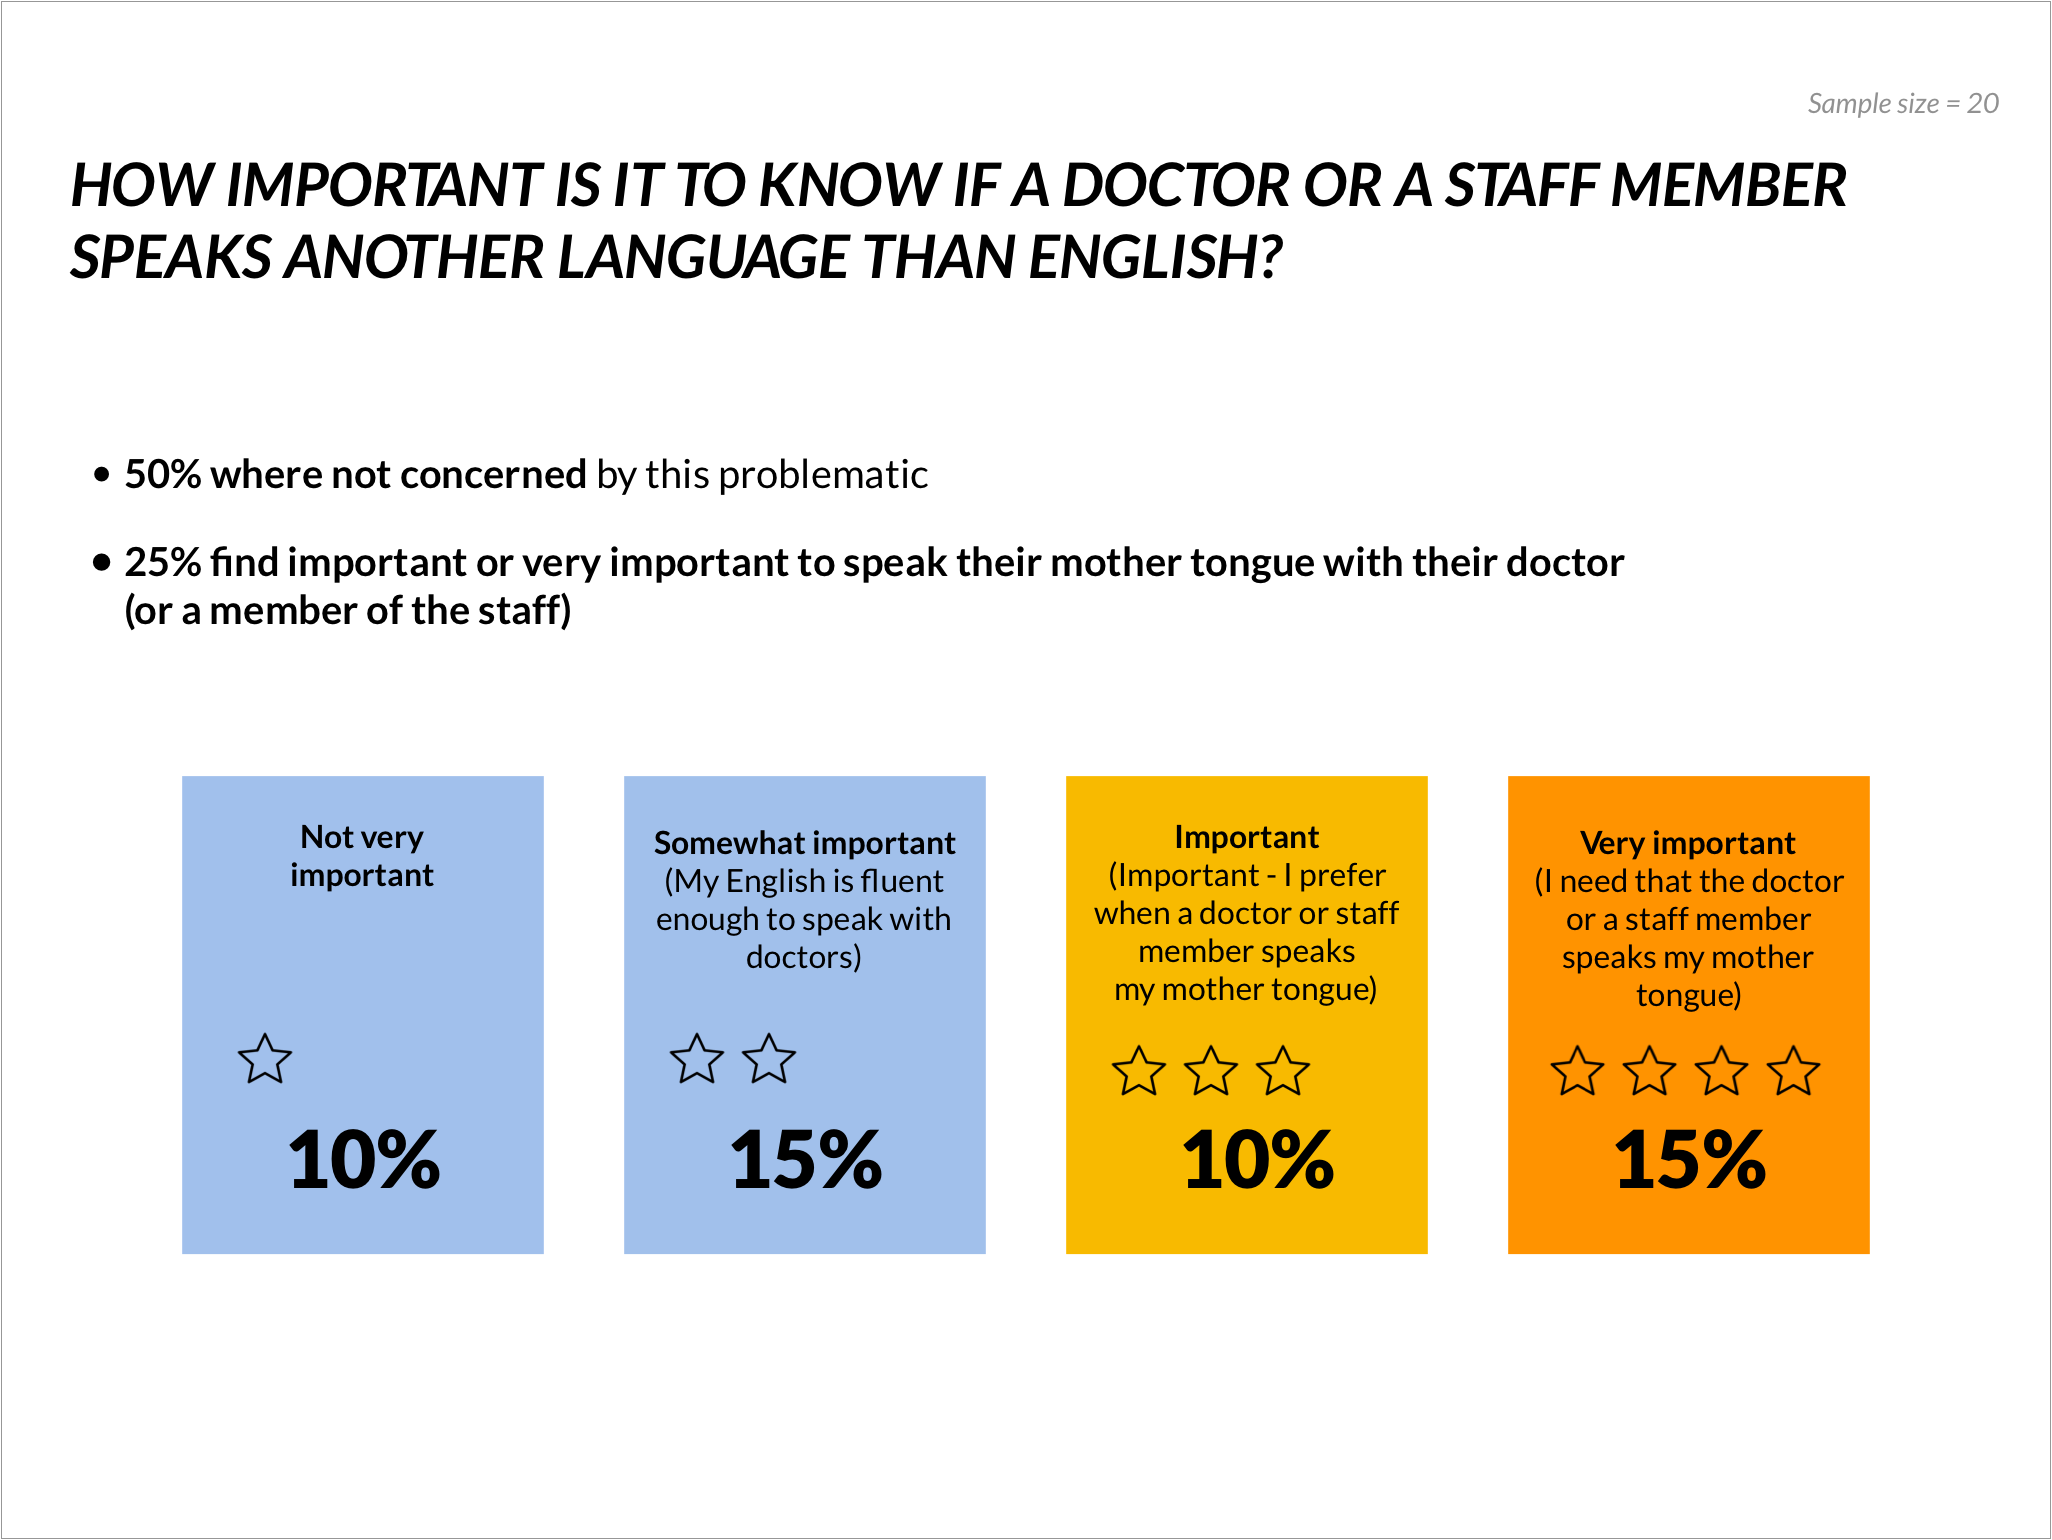 For 25% of the participants, it is important or very important to speak their mother tongue with their doctor